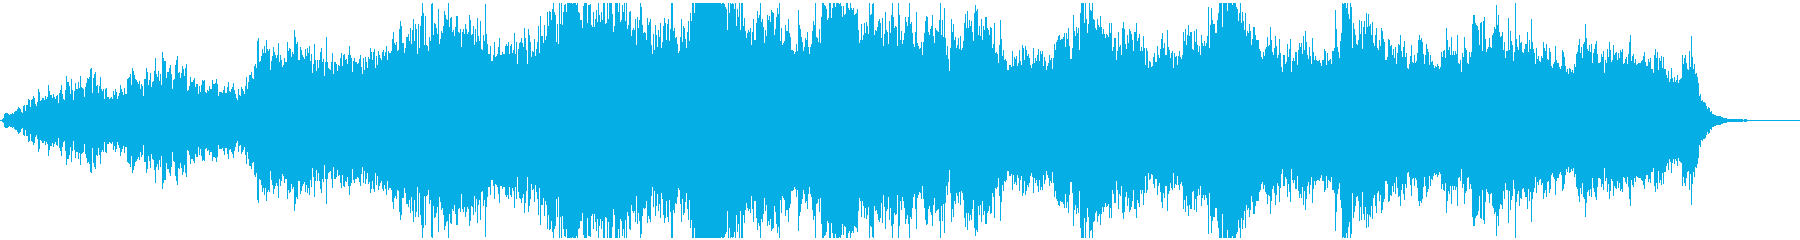 Playing jingle with a sad and shocking atmosphere's reproduced waveform